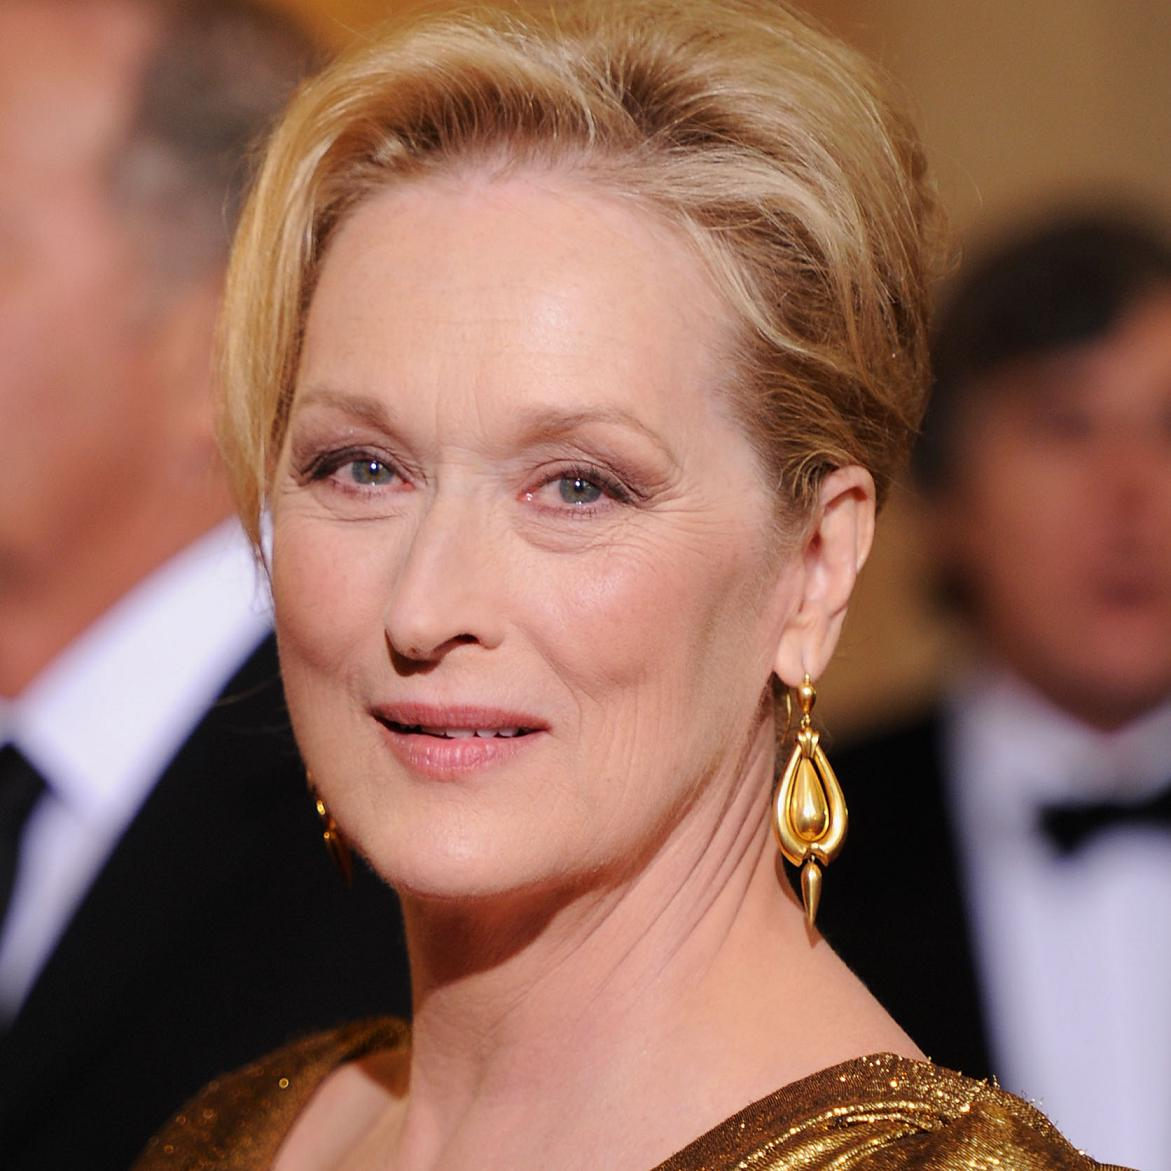 Meryl Streep Bio, Net Worth, Facts